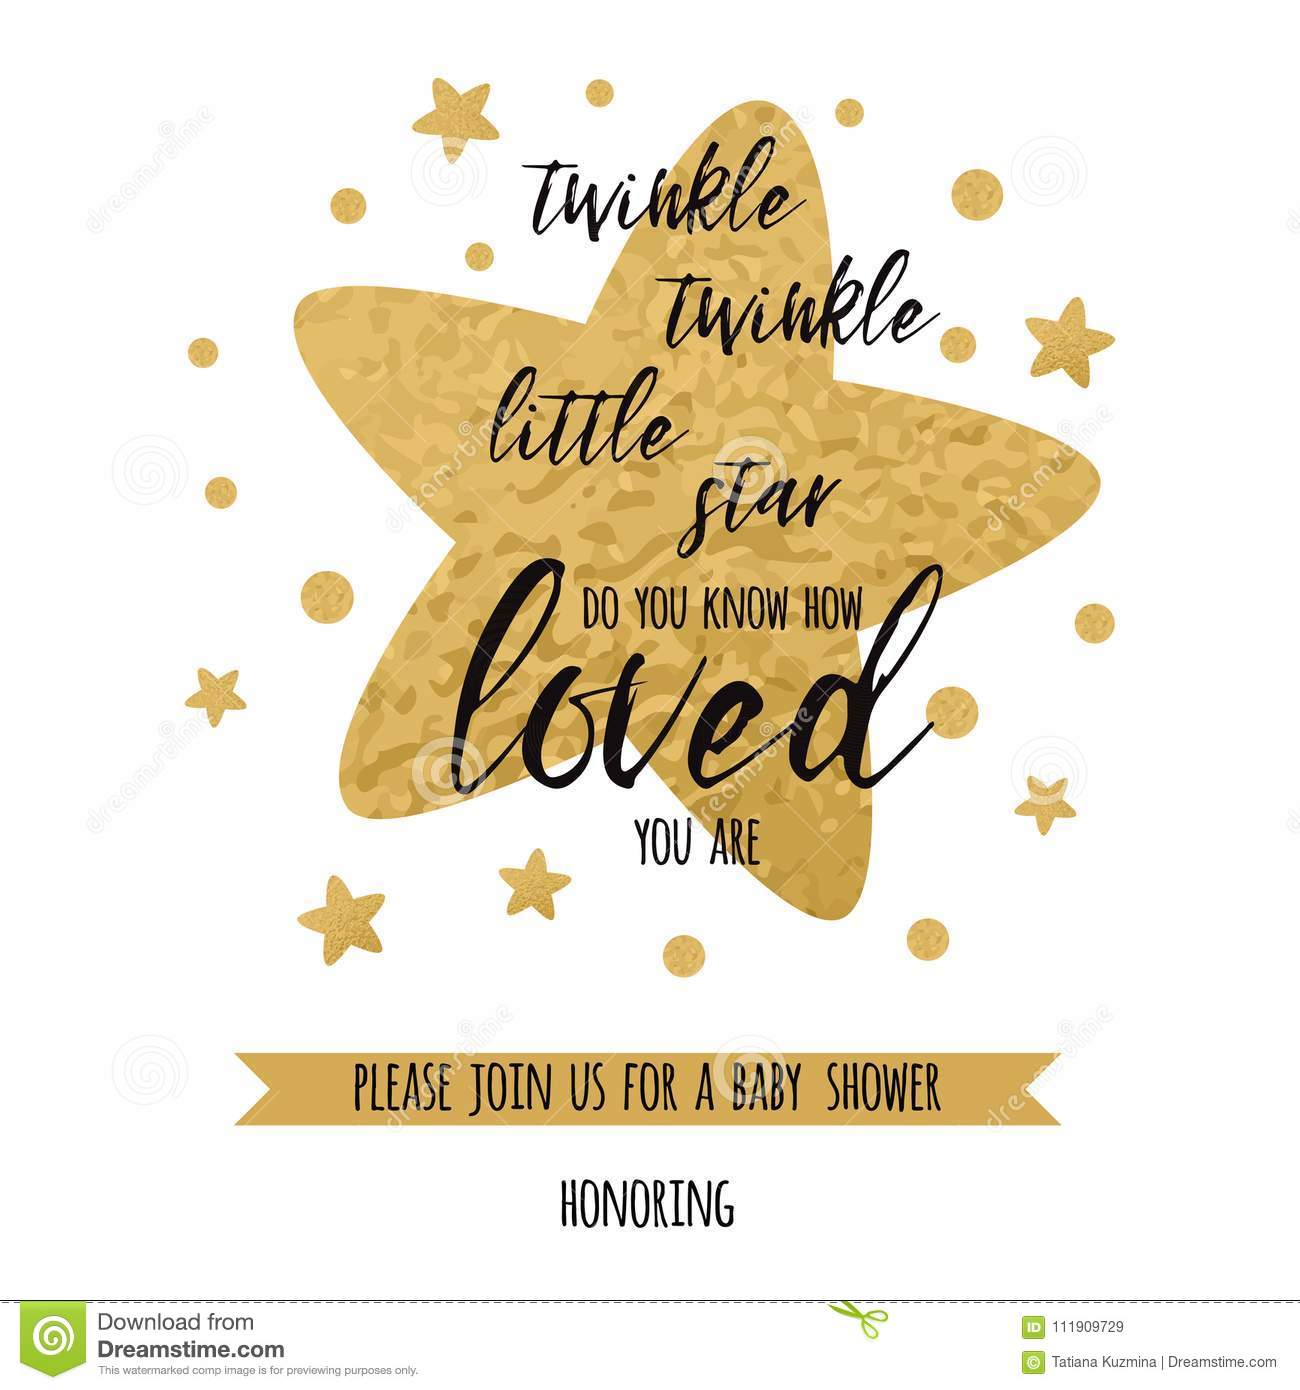 Twinkle Twinkle Little Star Text With Golden Oranment And Gold Star